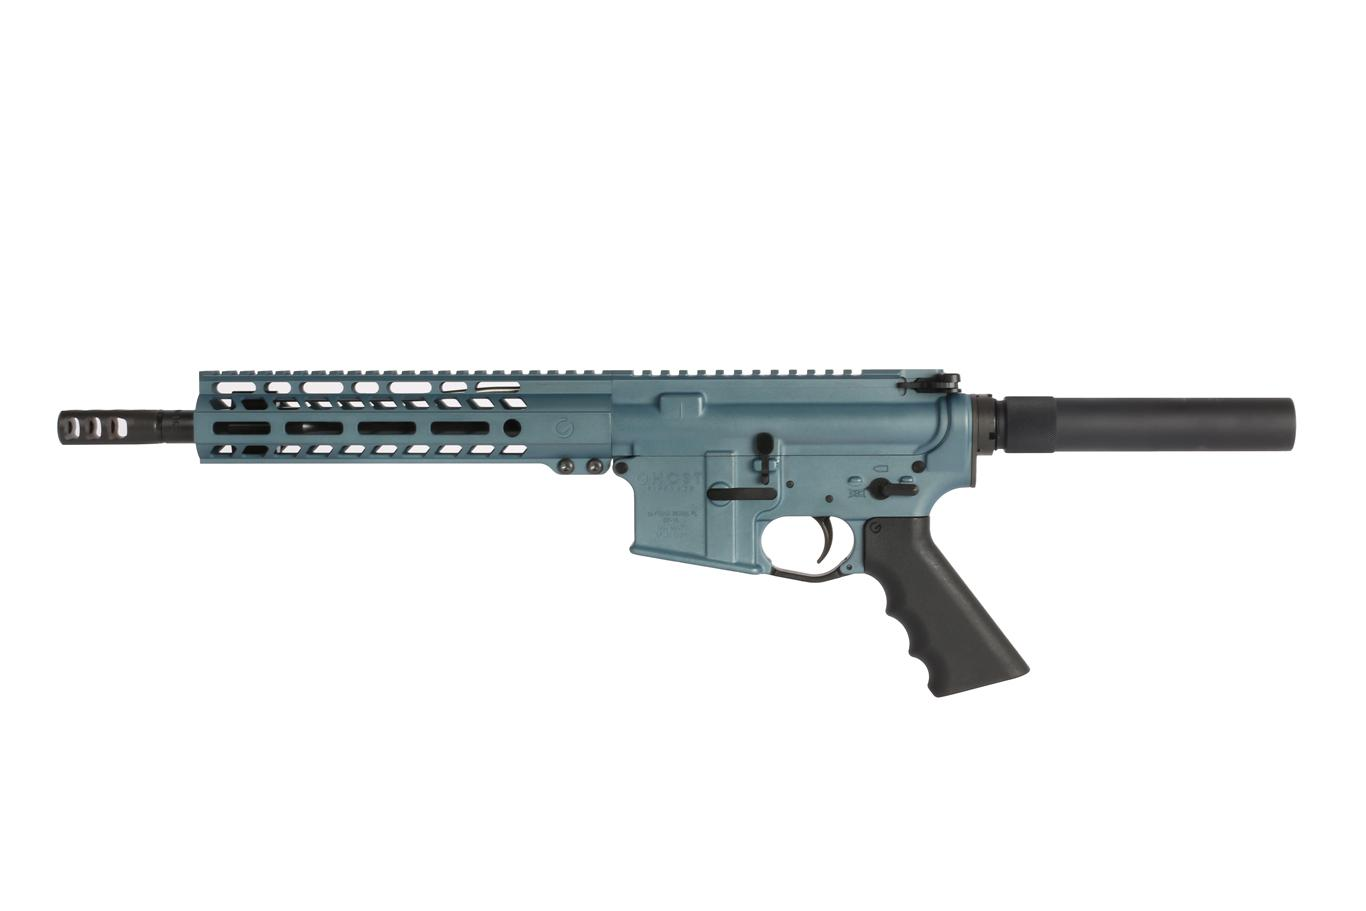 This 10.5 ar 15 pistol with axe muzzle brake from Ghost Firearms has an ergonomic ghost pistol grip